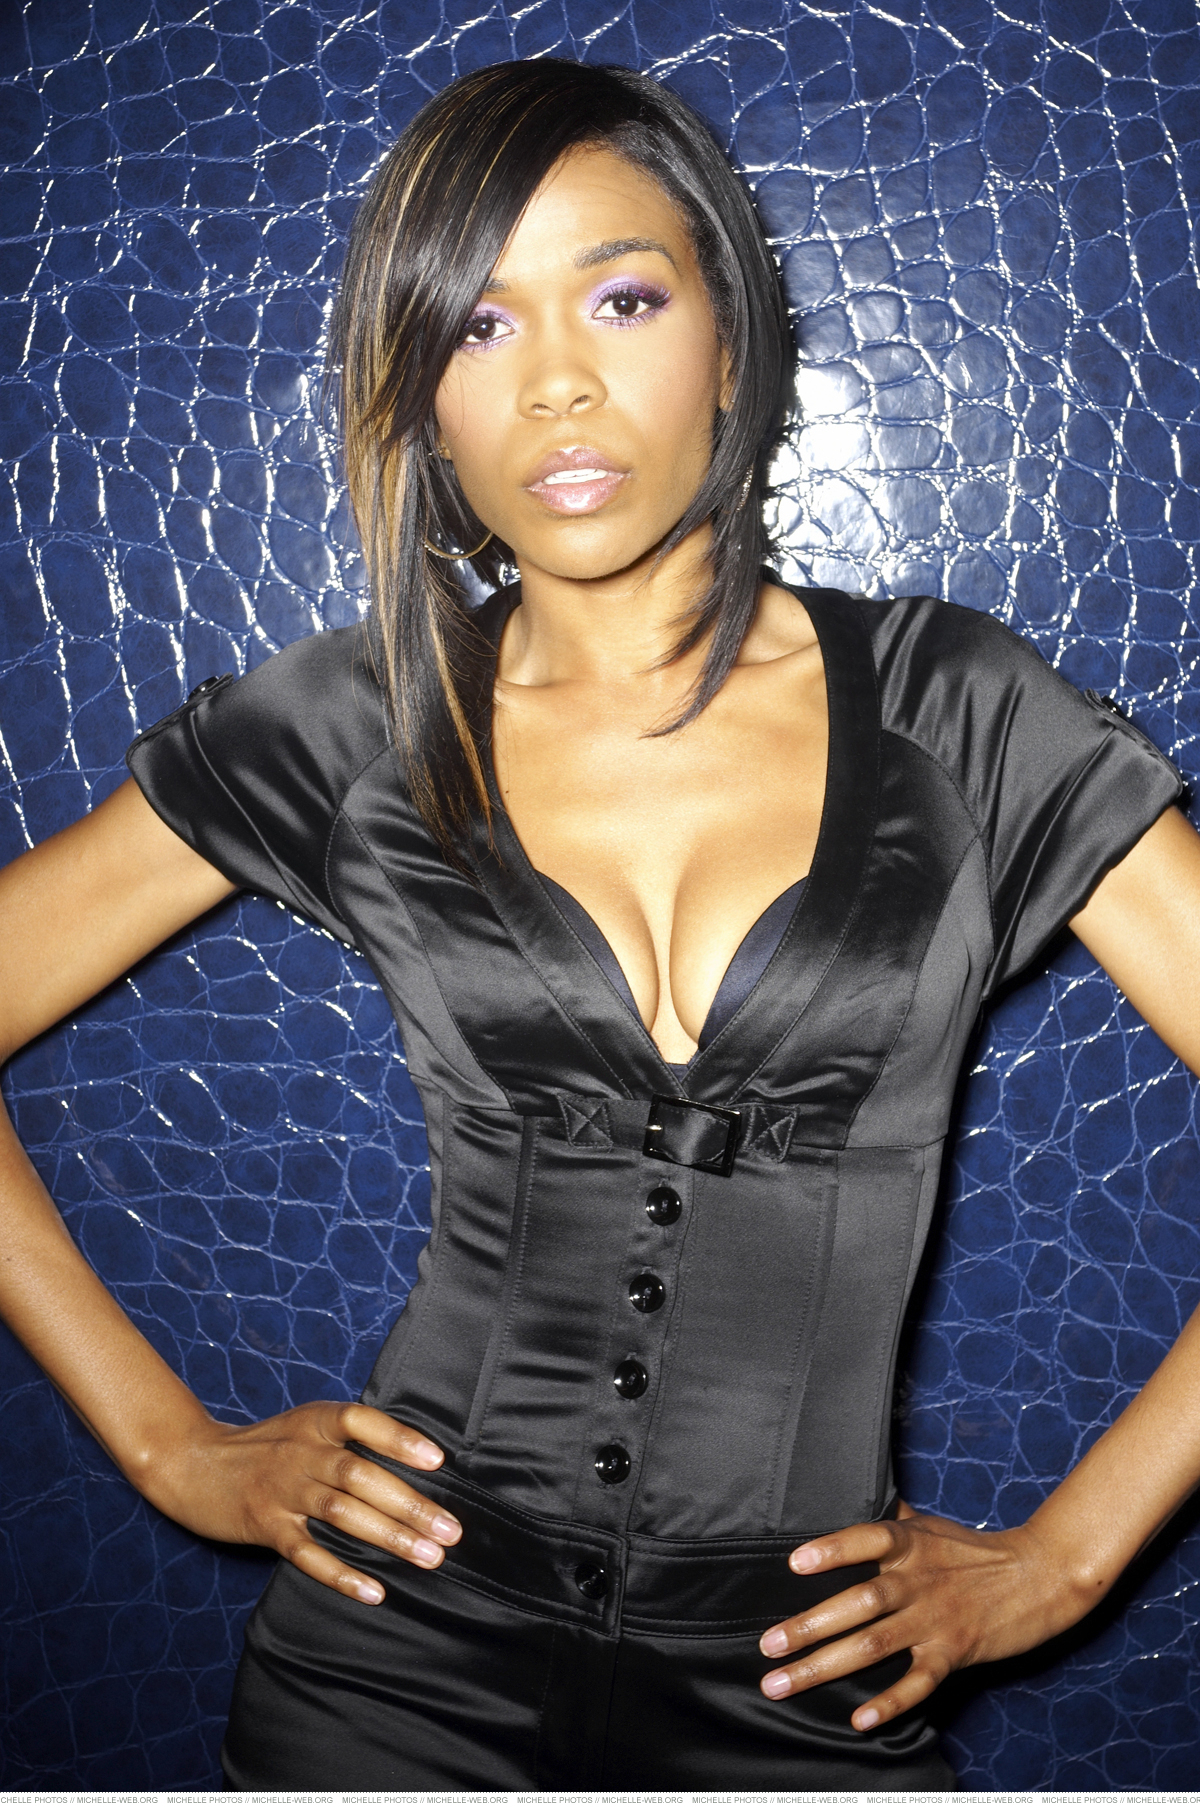 Michelle williams singer images michelle hd wallpaper and background